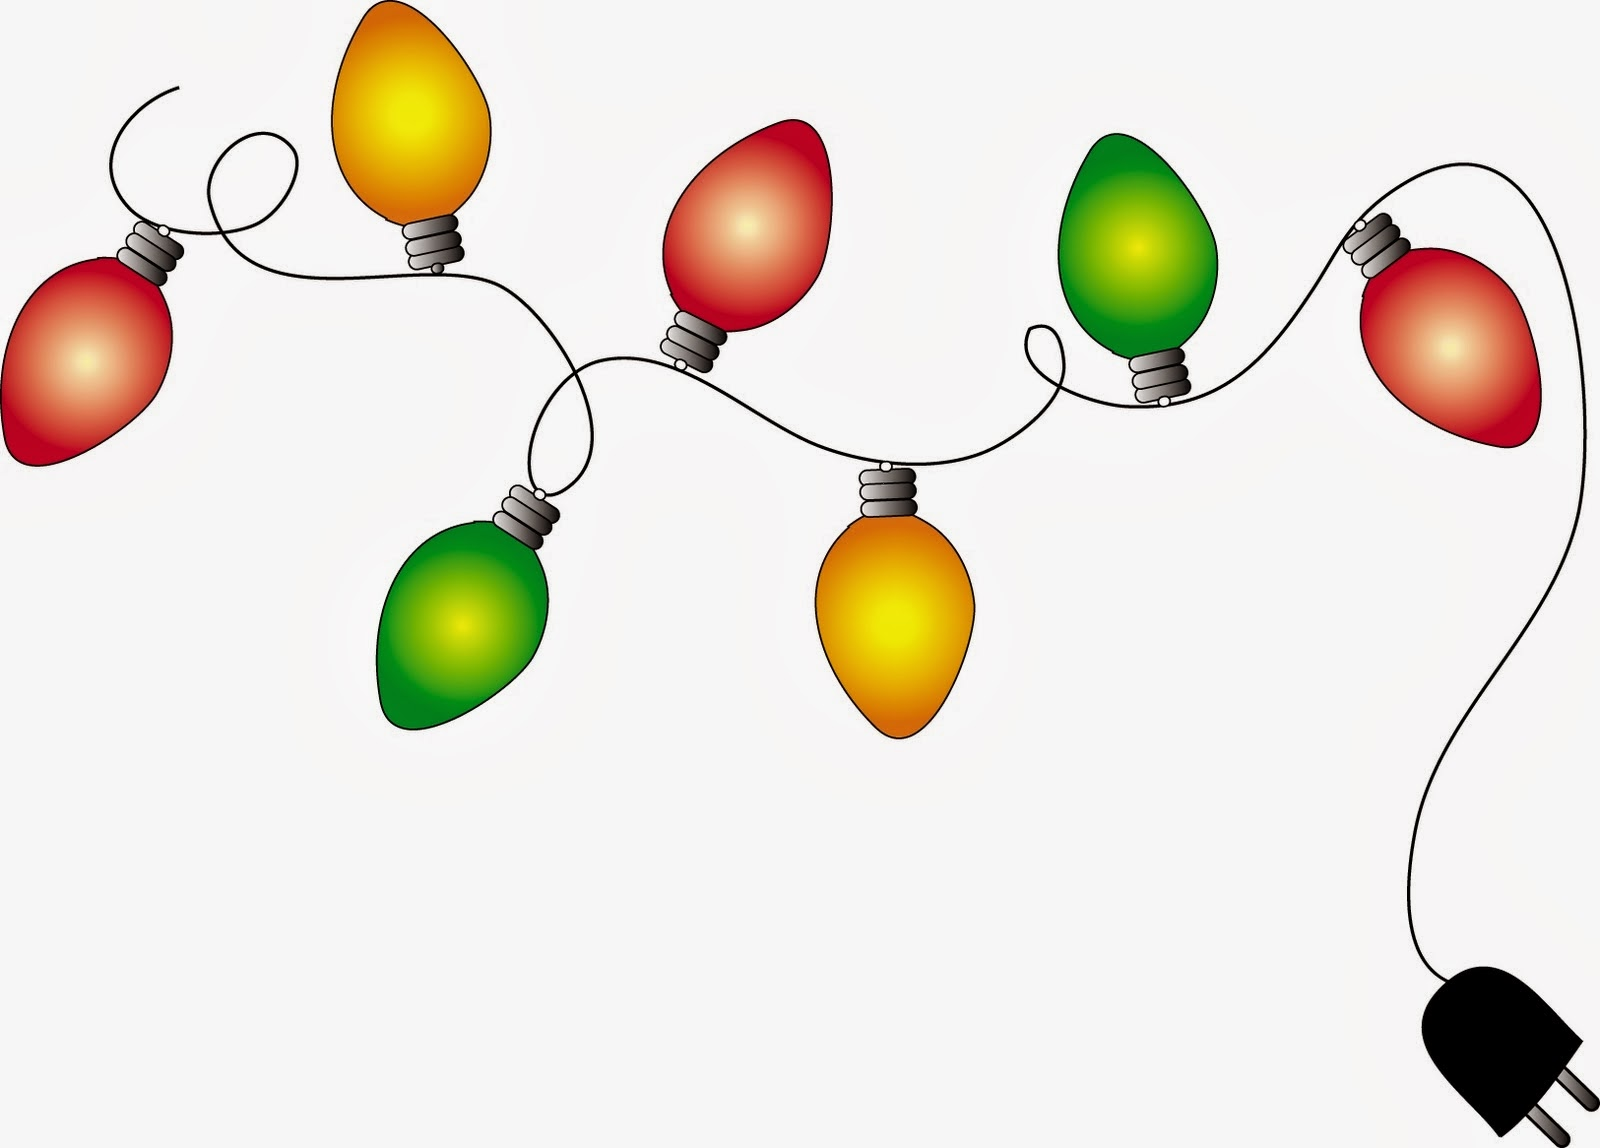 Free technology animated cliparts. Lights clipart uses light